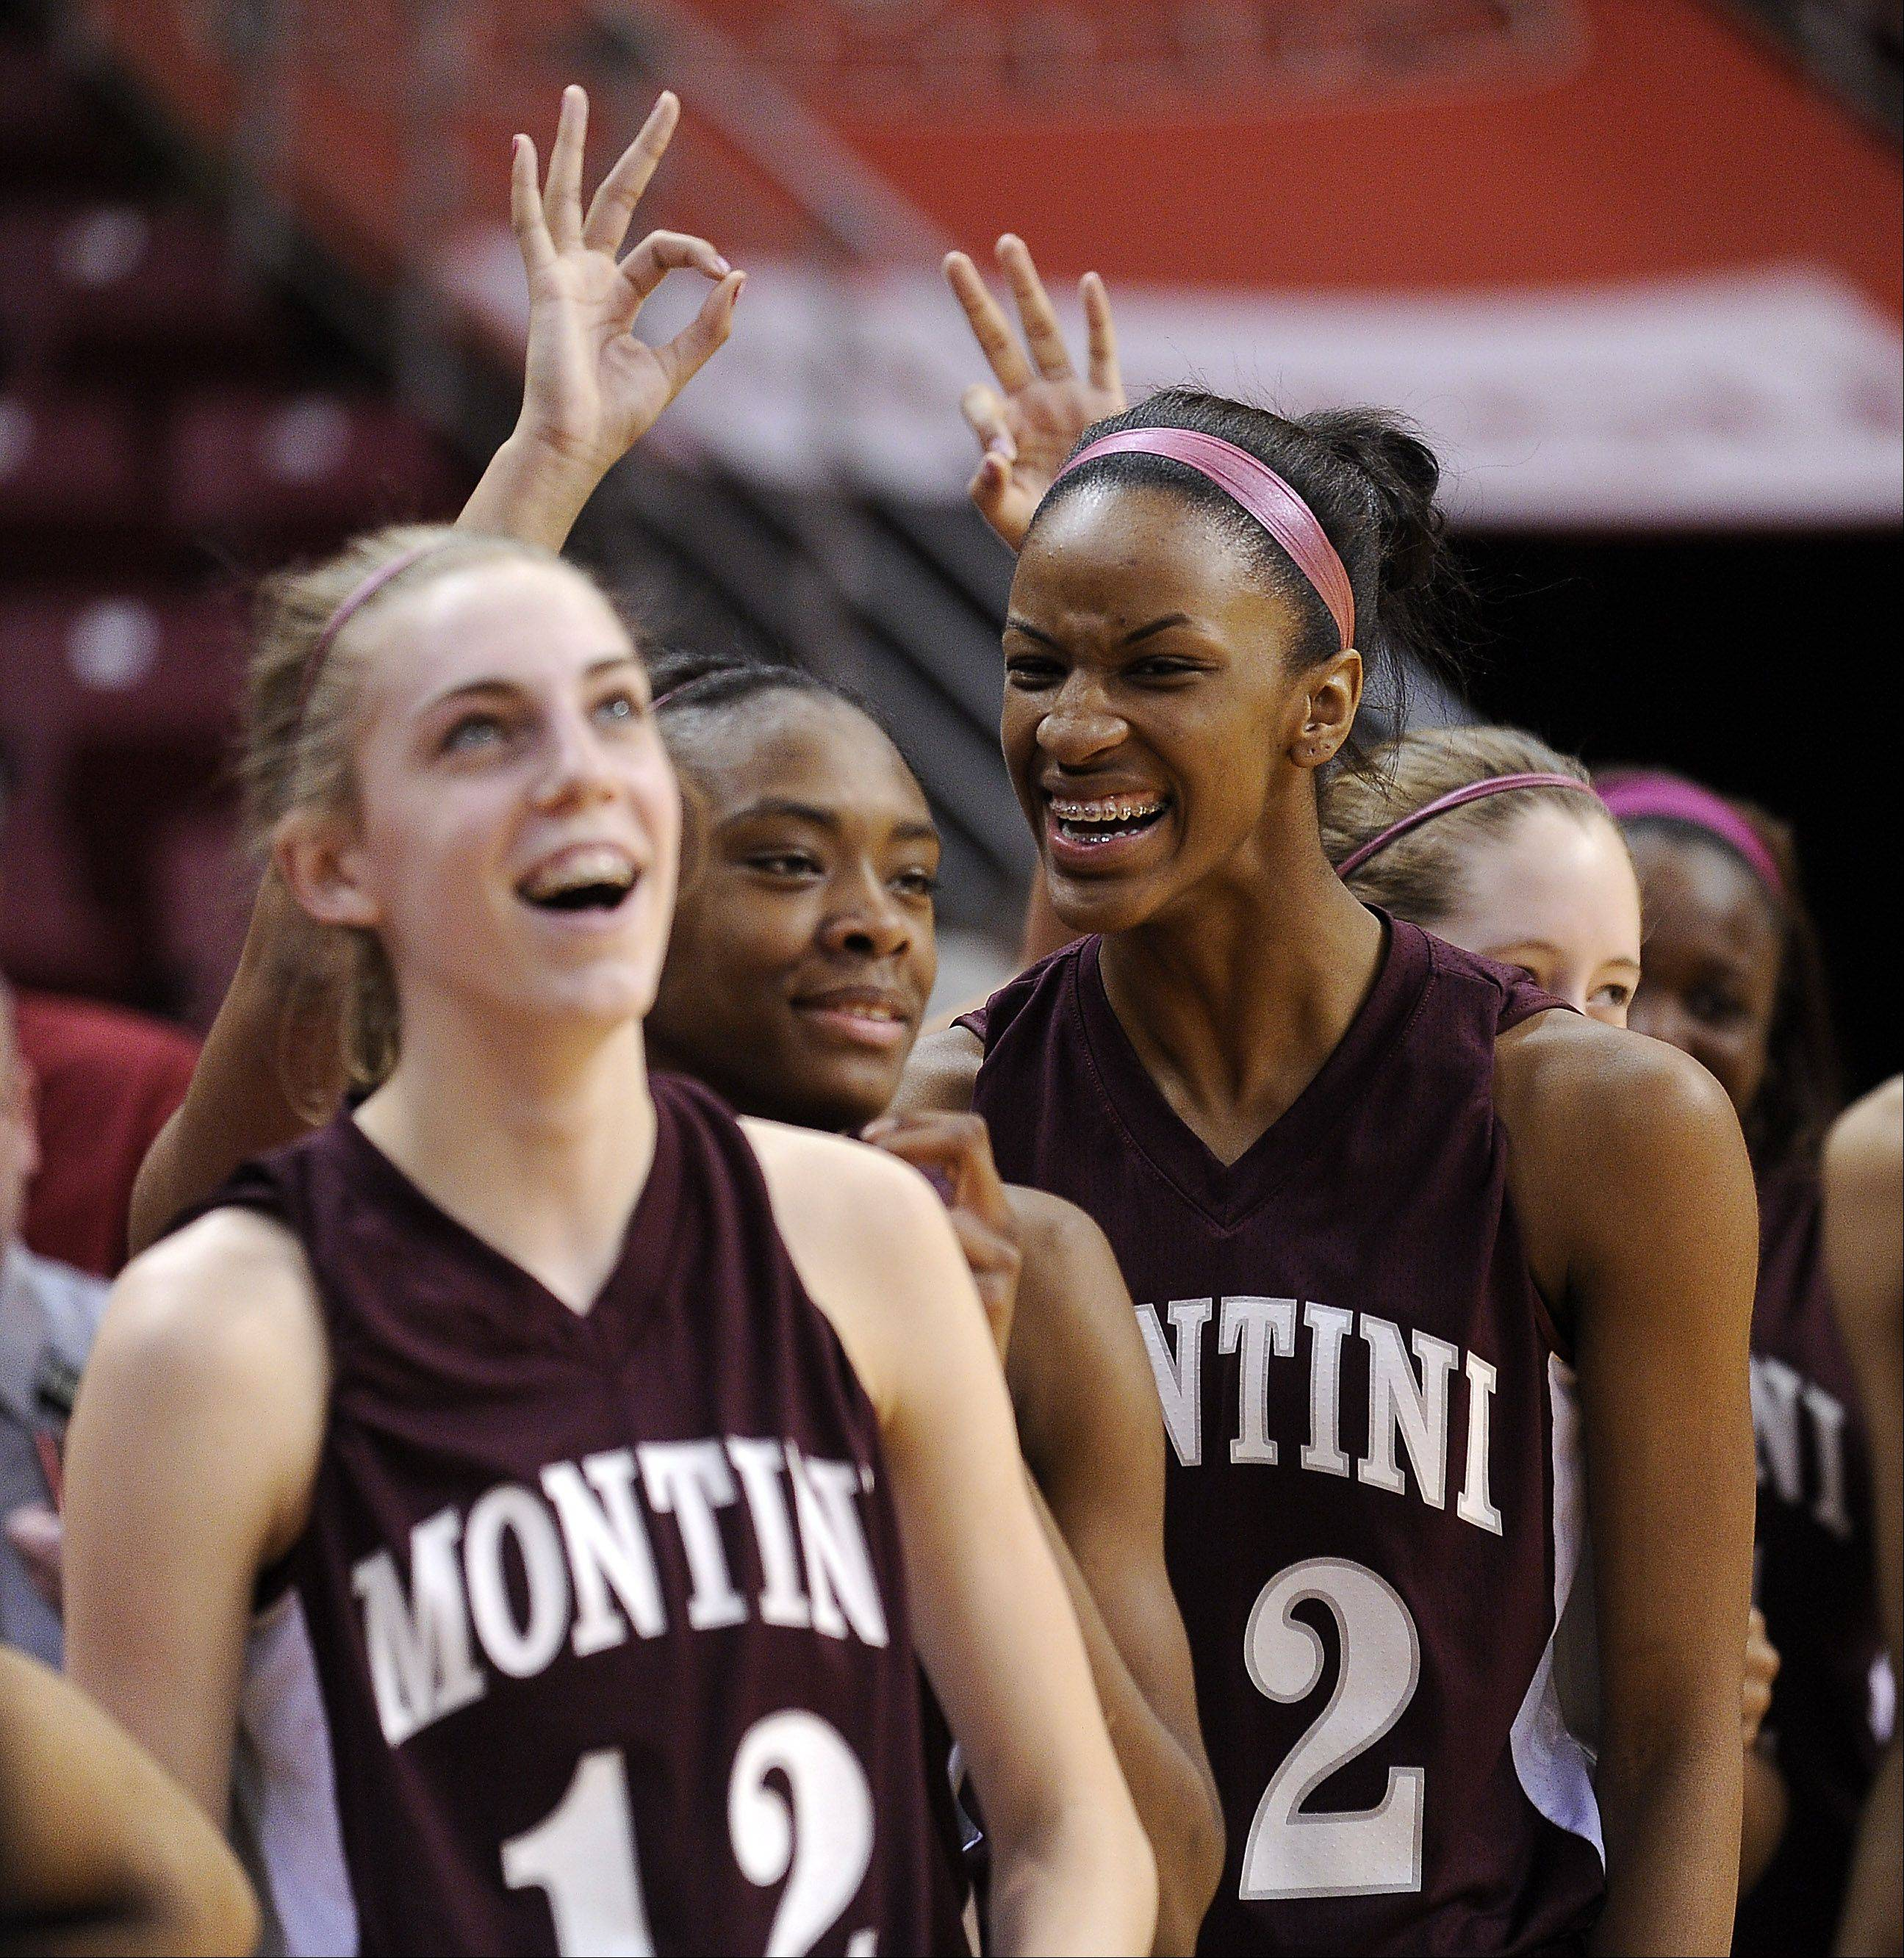 Montini's bench starts to celebrate with smiles and three-peat signs as they beat Vernon Hills in the 2012 IHSA Class 3A Girls Basketball Tournament in Normal, Illinois on Saturday.